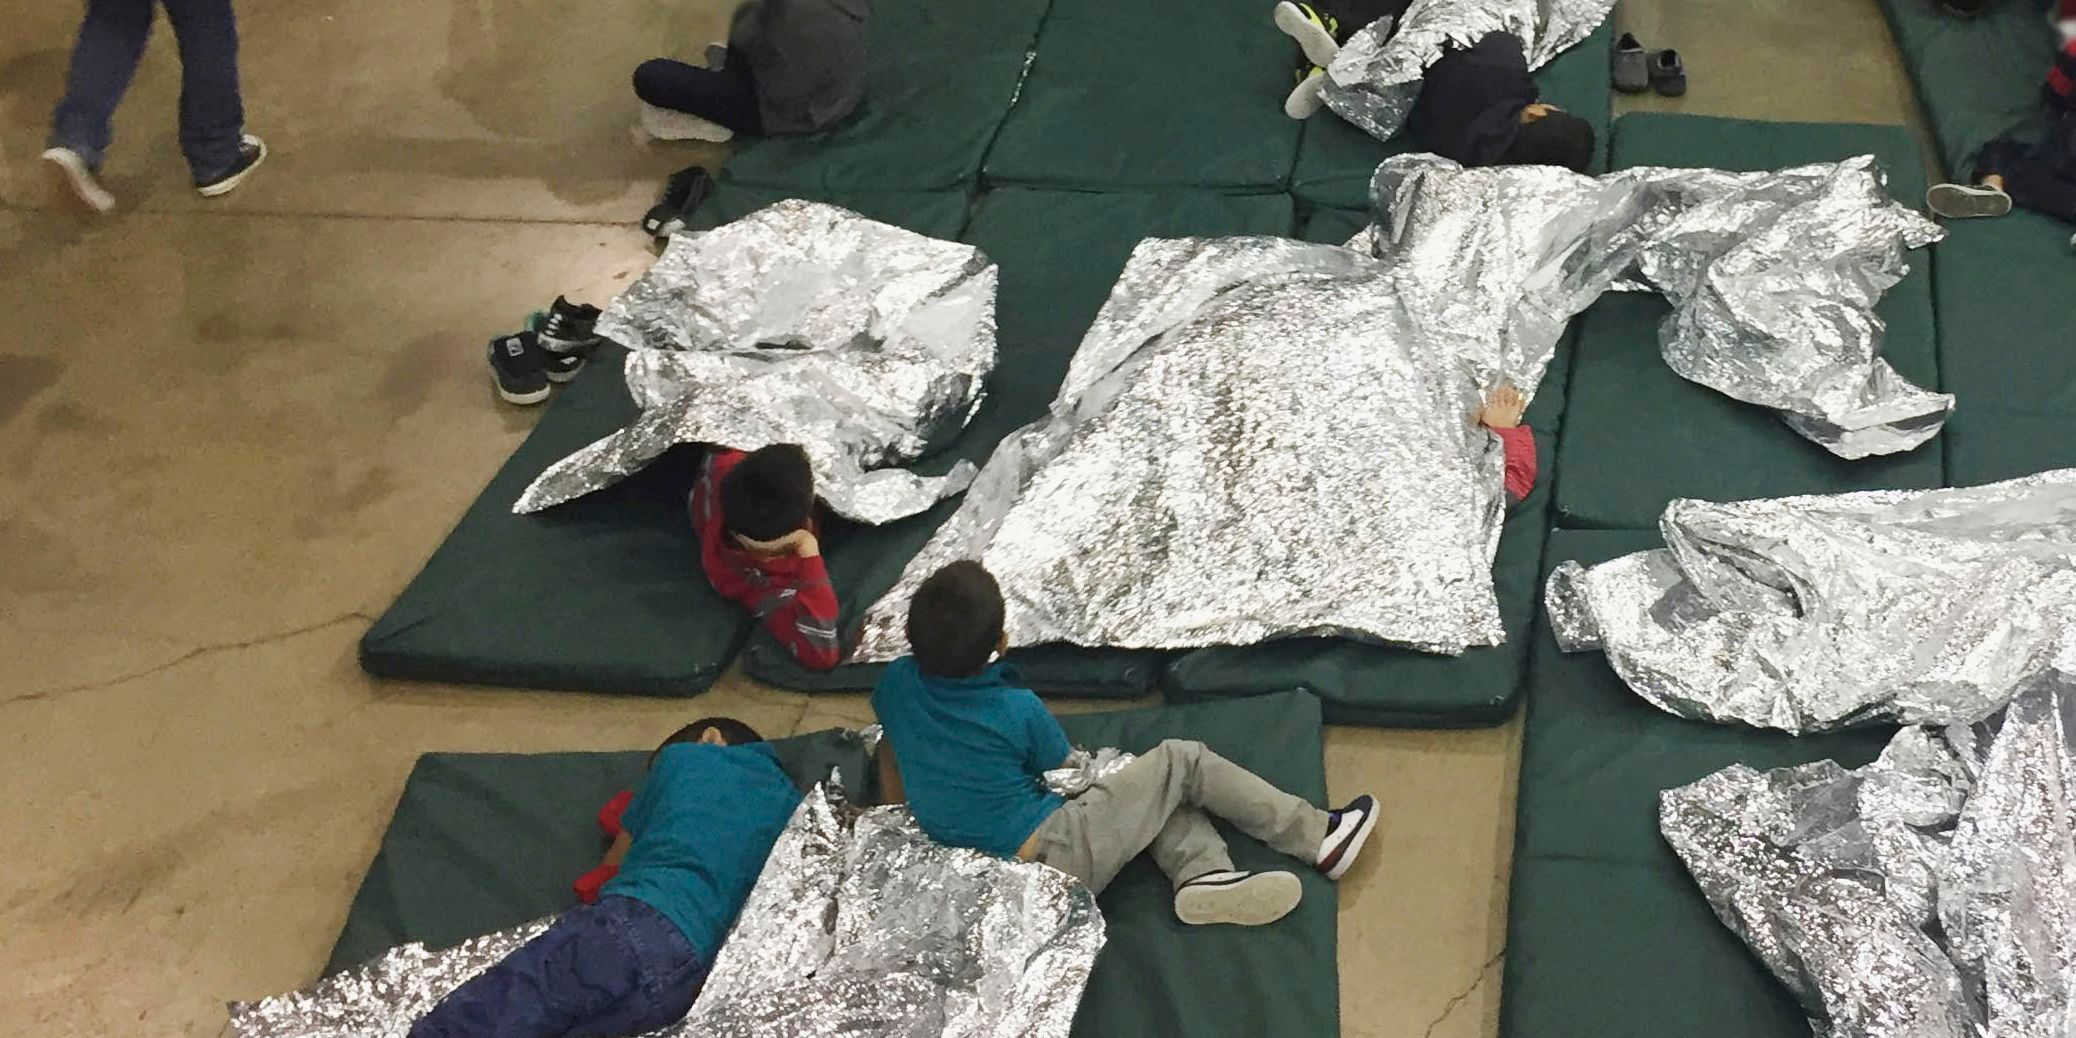 Immigration facility in McAllen, Texas